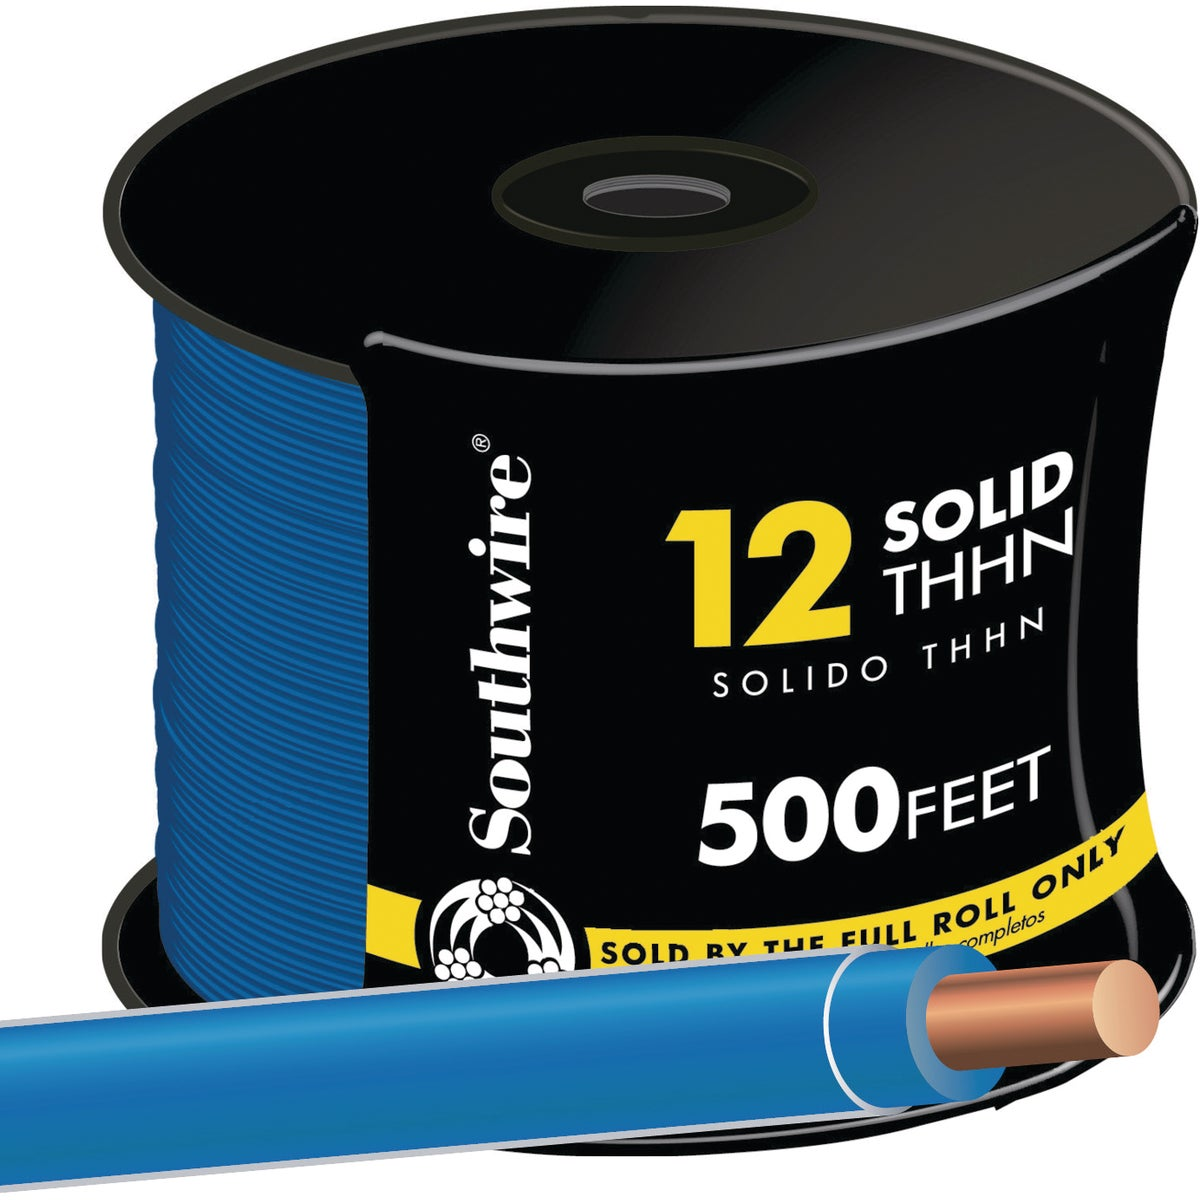 500' 12SOL BLU THHN WIRE - 11590758 by Southwire Company